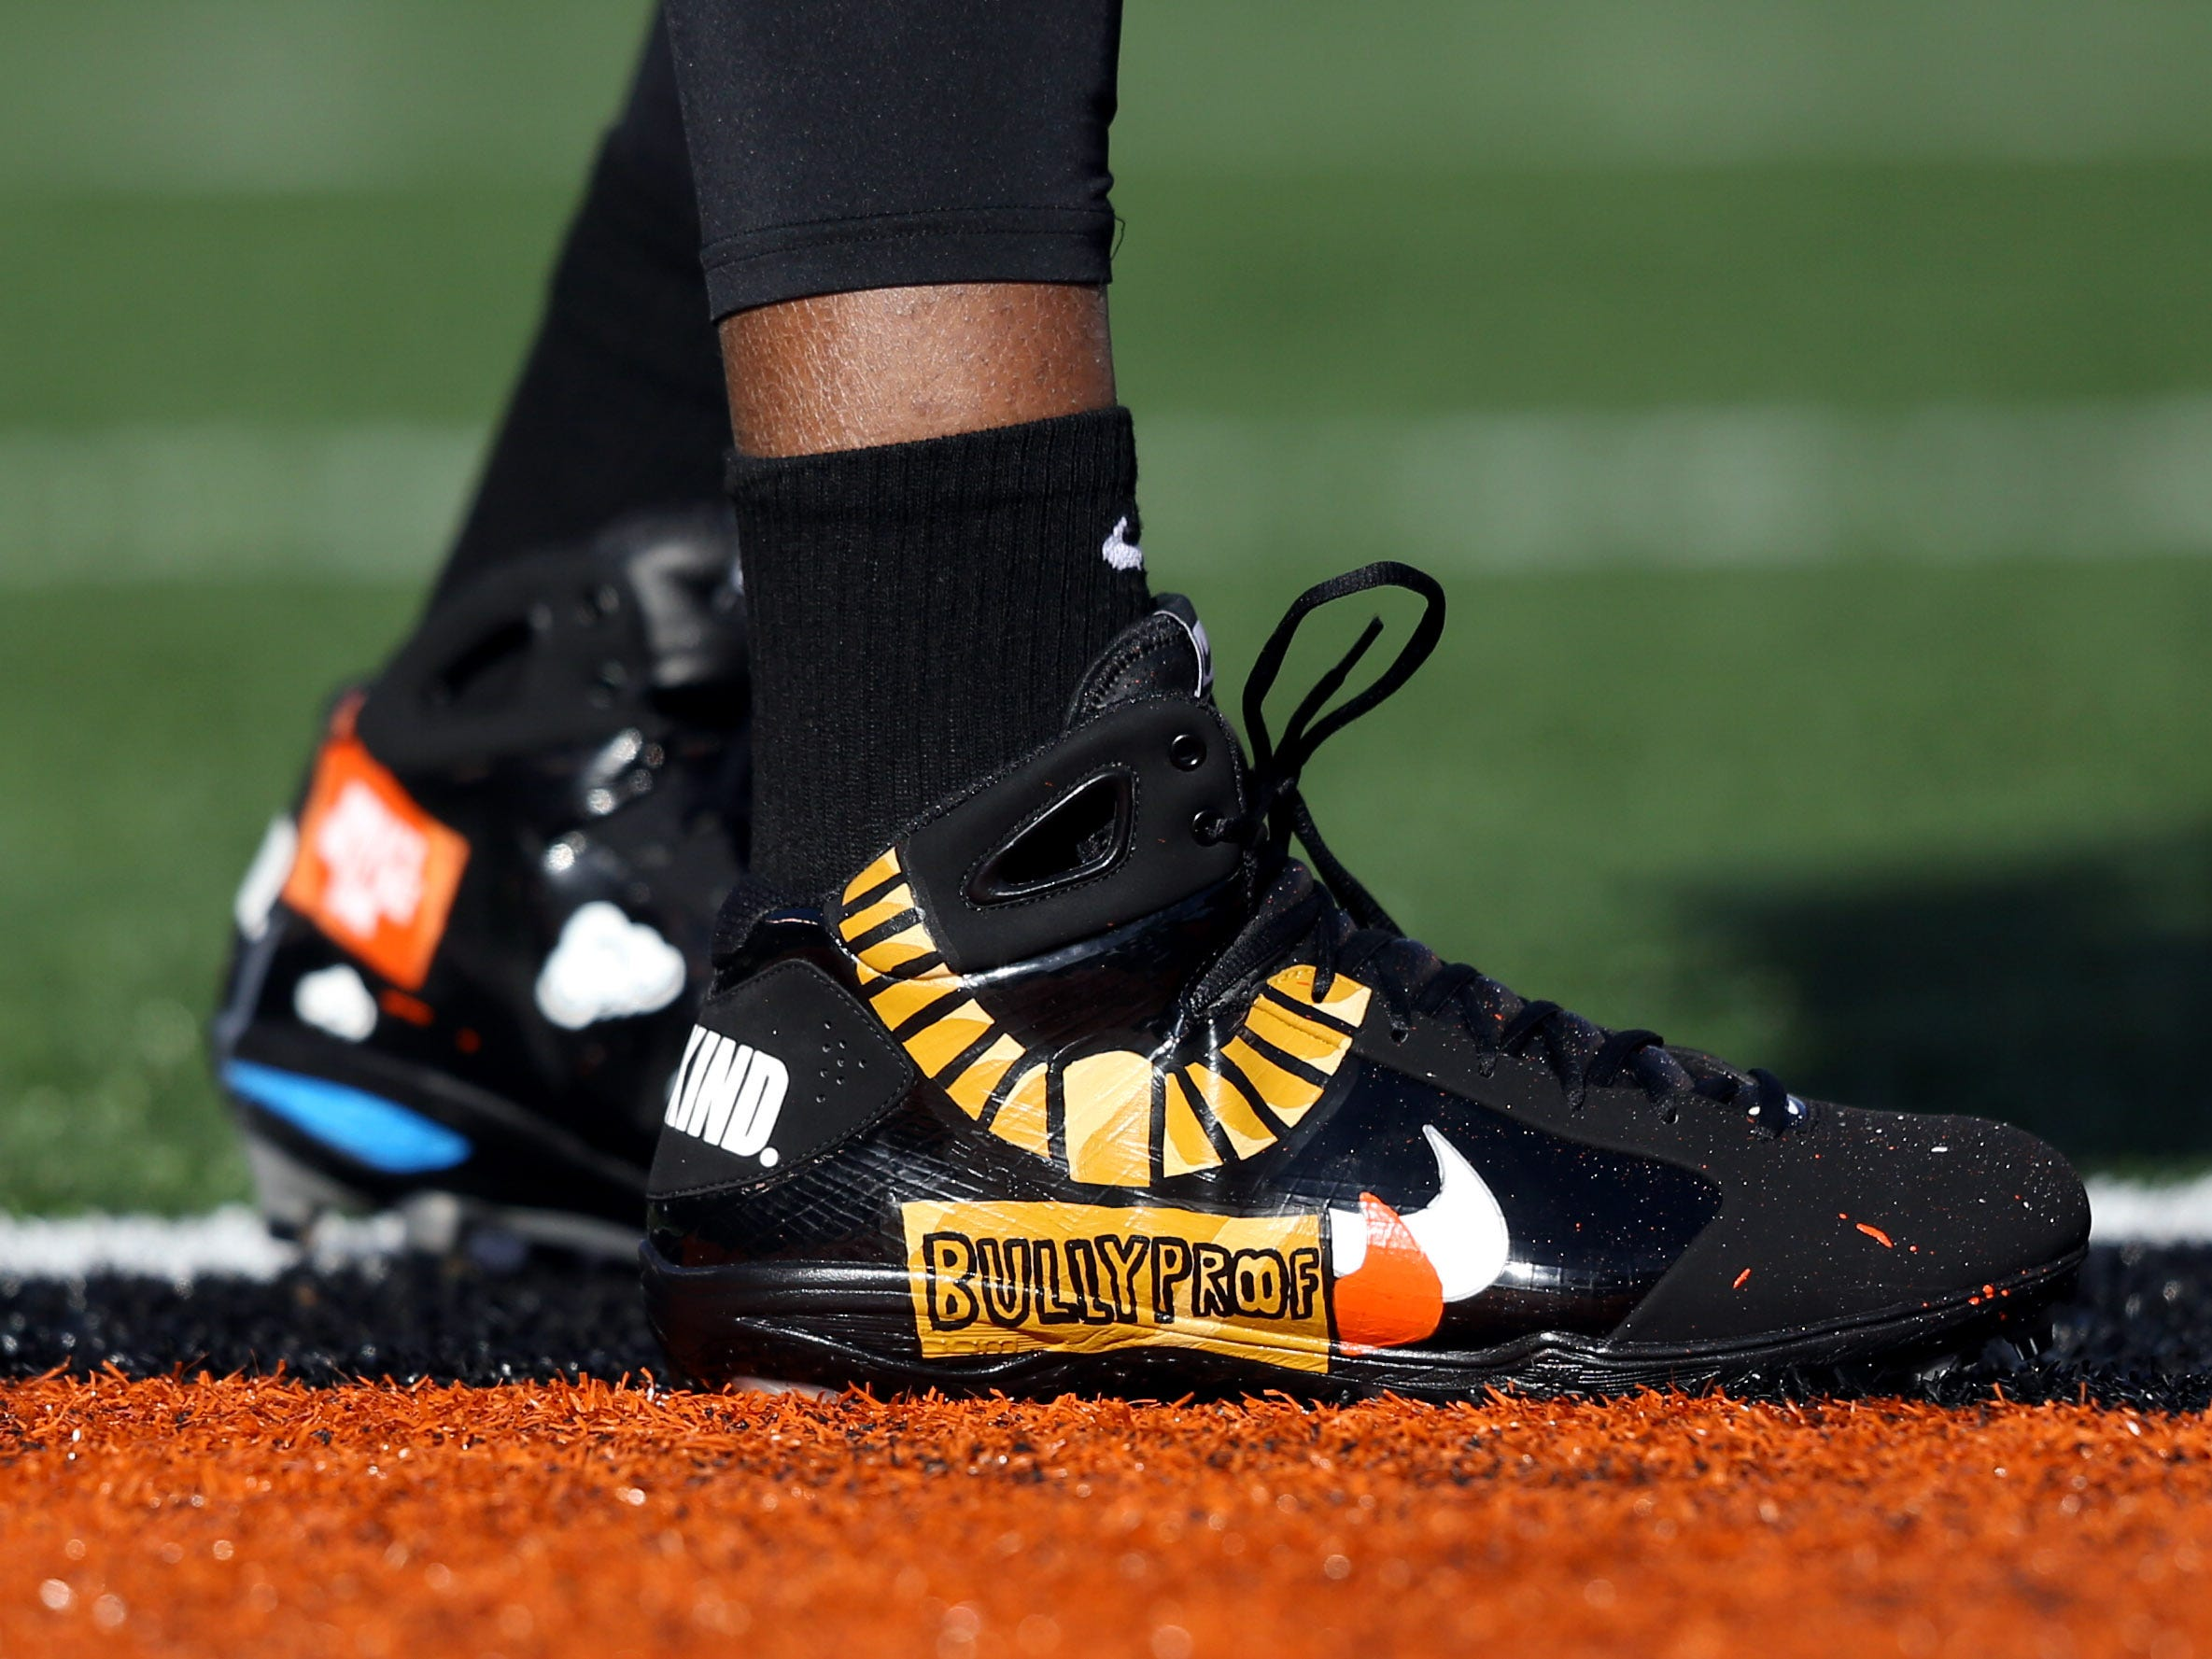 Cincinnati Bengals defensive end Carlos Dunlap shoes for My Cause My Cleats during warmups prior to the game against the Denver Broncos at Paul Brown Stadium.